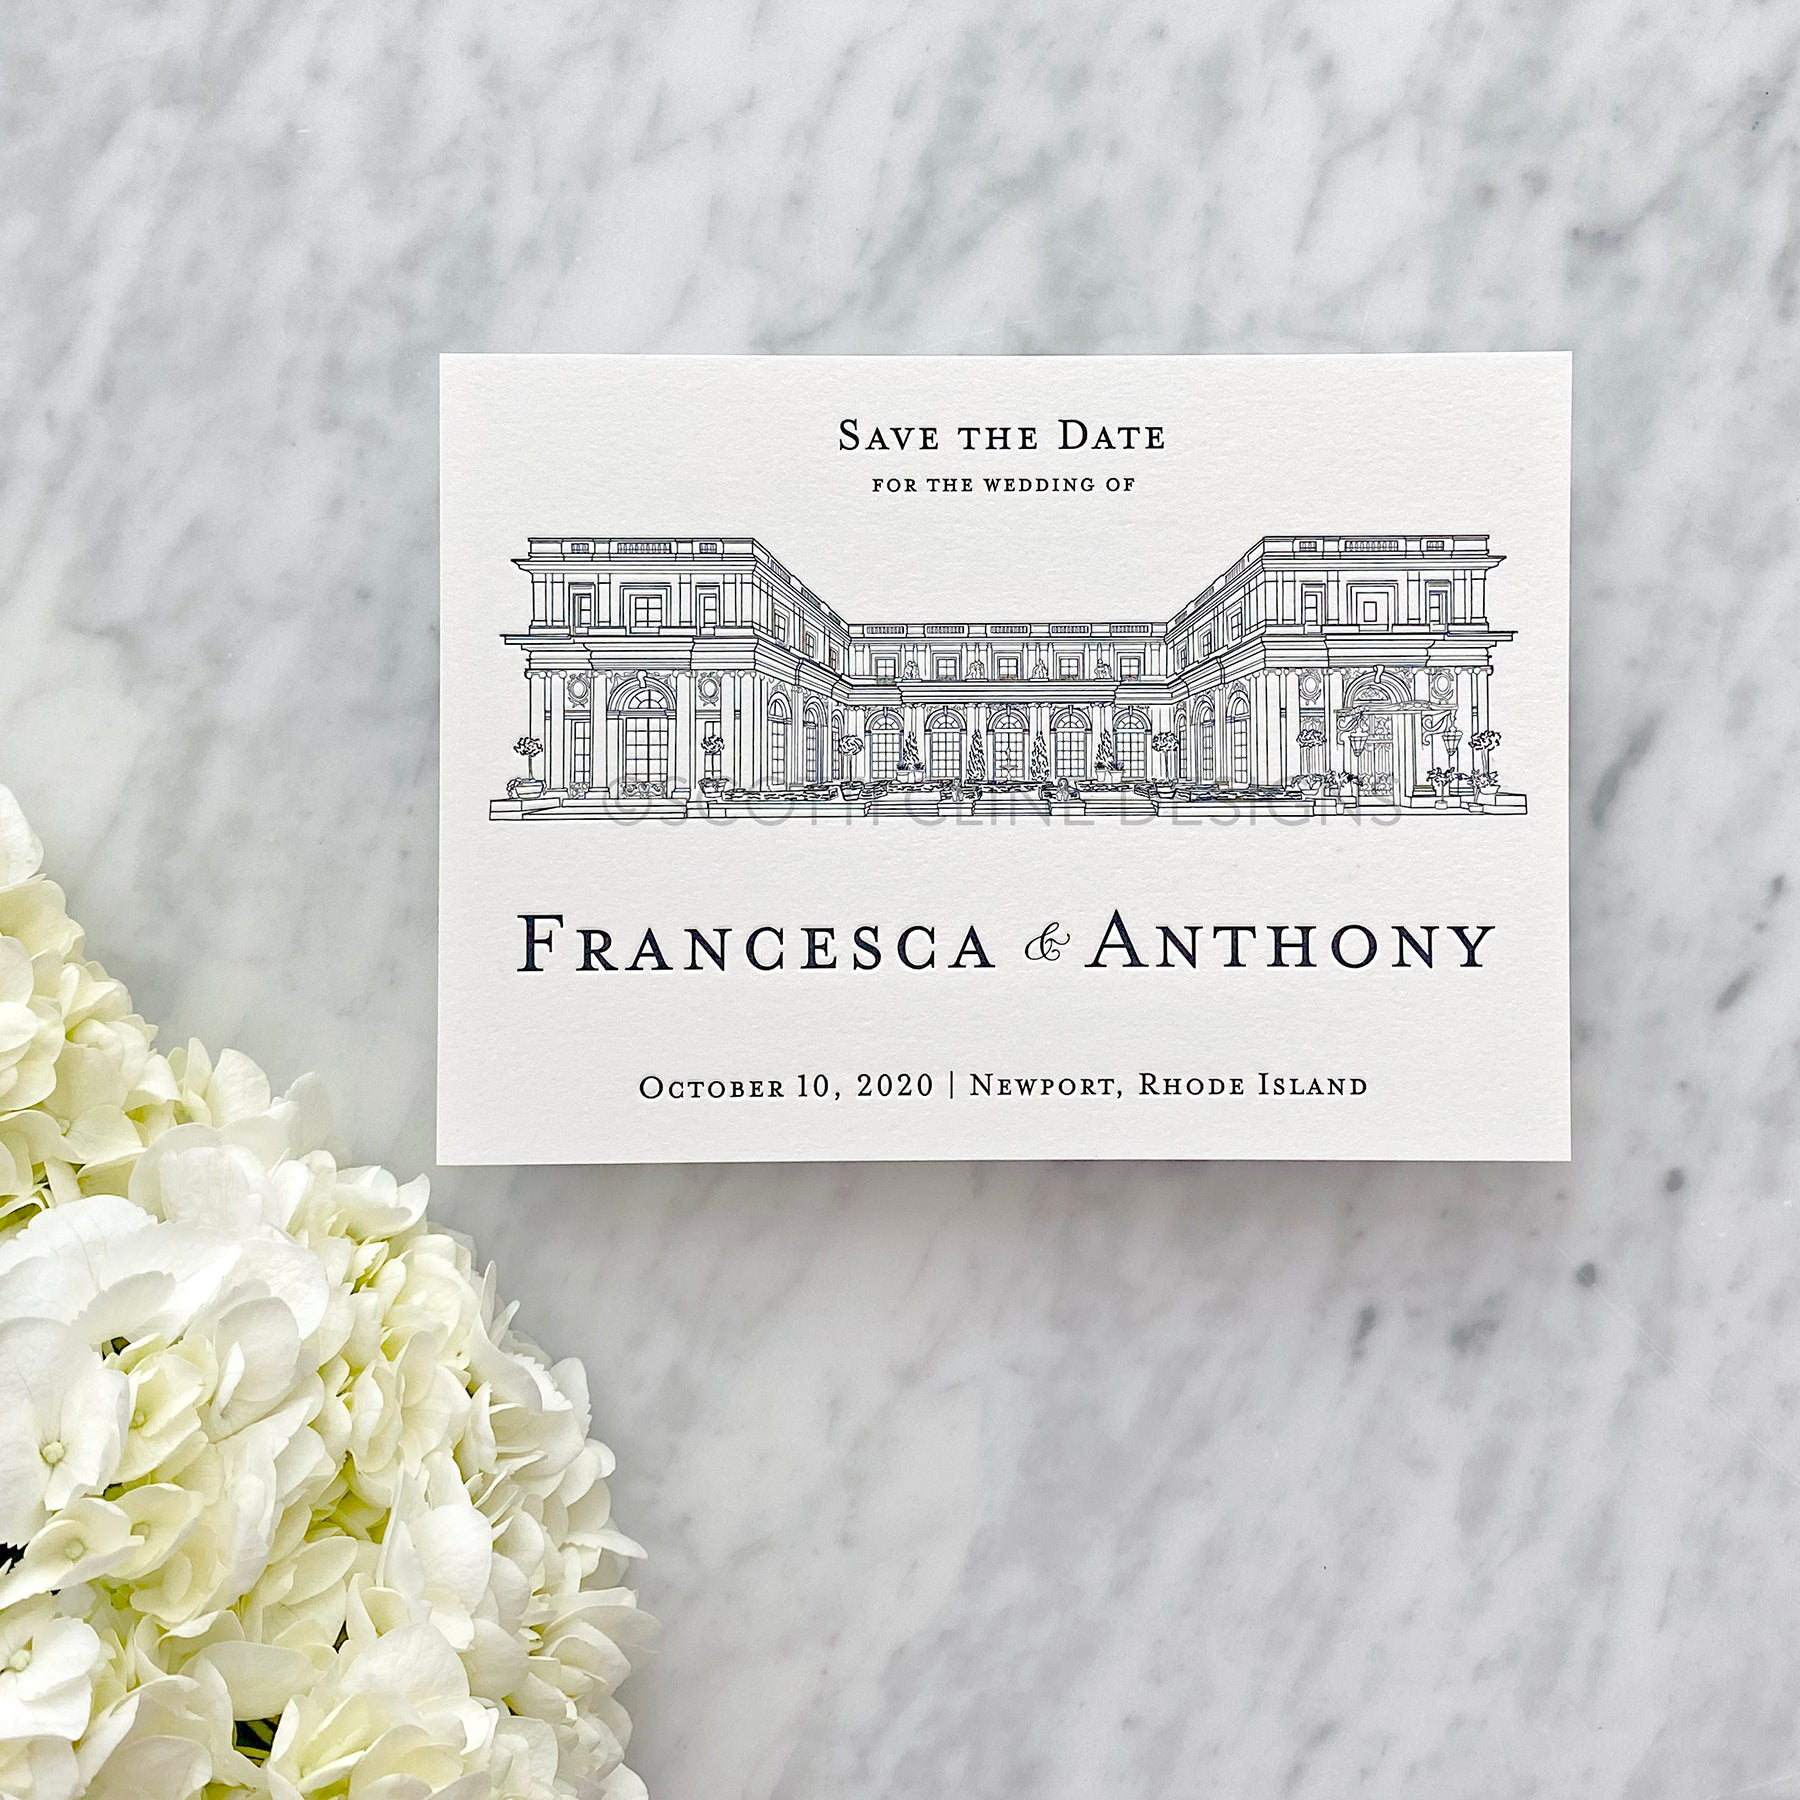 Letterpress Rosecliff Mansion Wedding Venue Save the Date by Scotti Cline Designs - Newport, Rhode Island